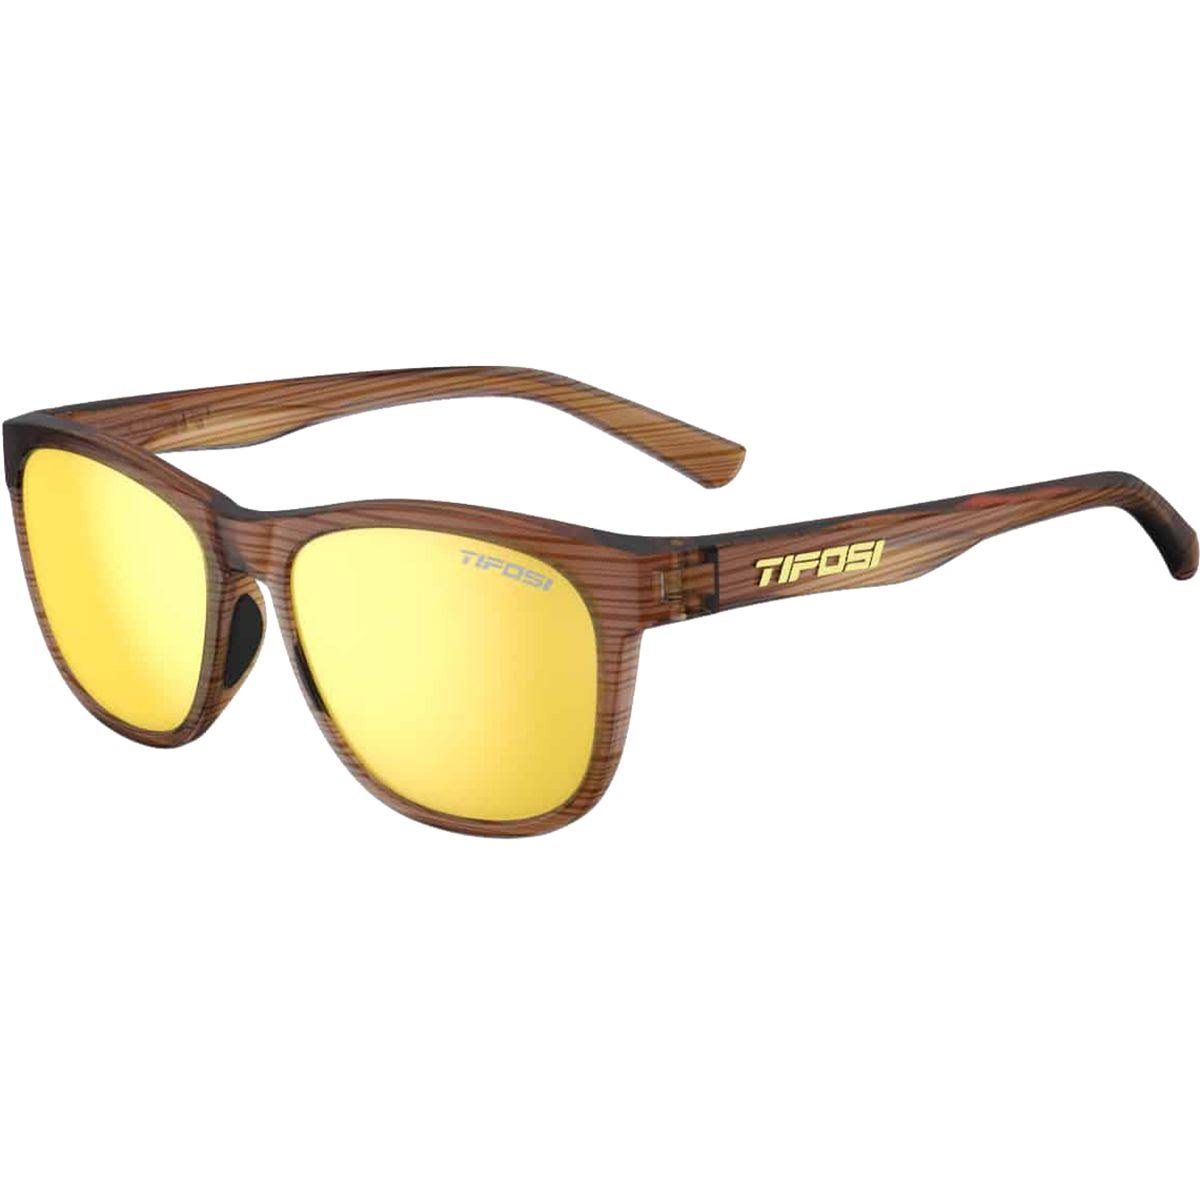 Tifosi Swank Single Lens Sunglasses - Woodgrain/Smoke Yellow